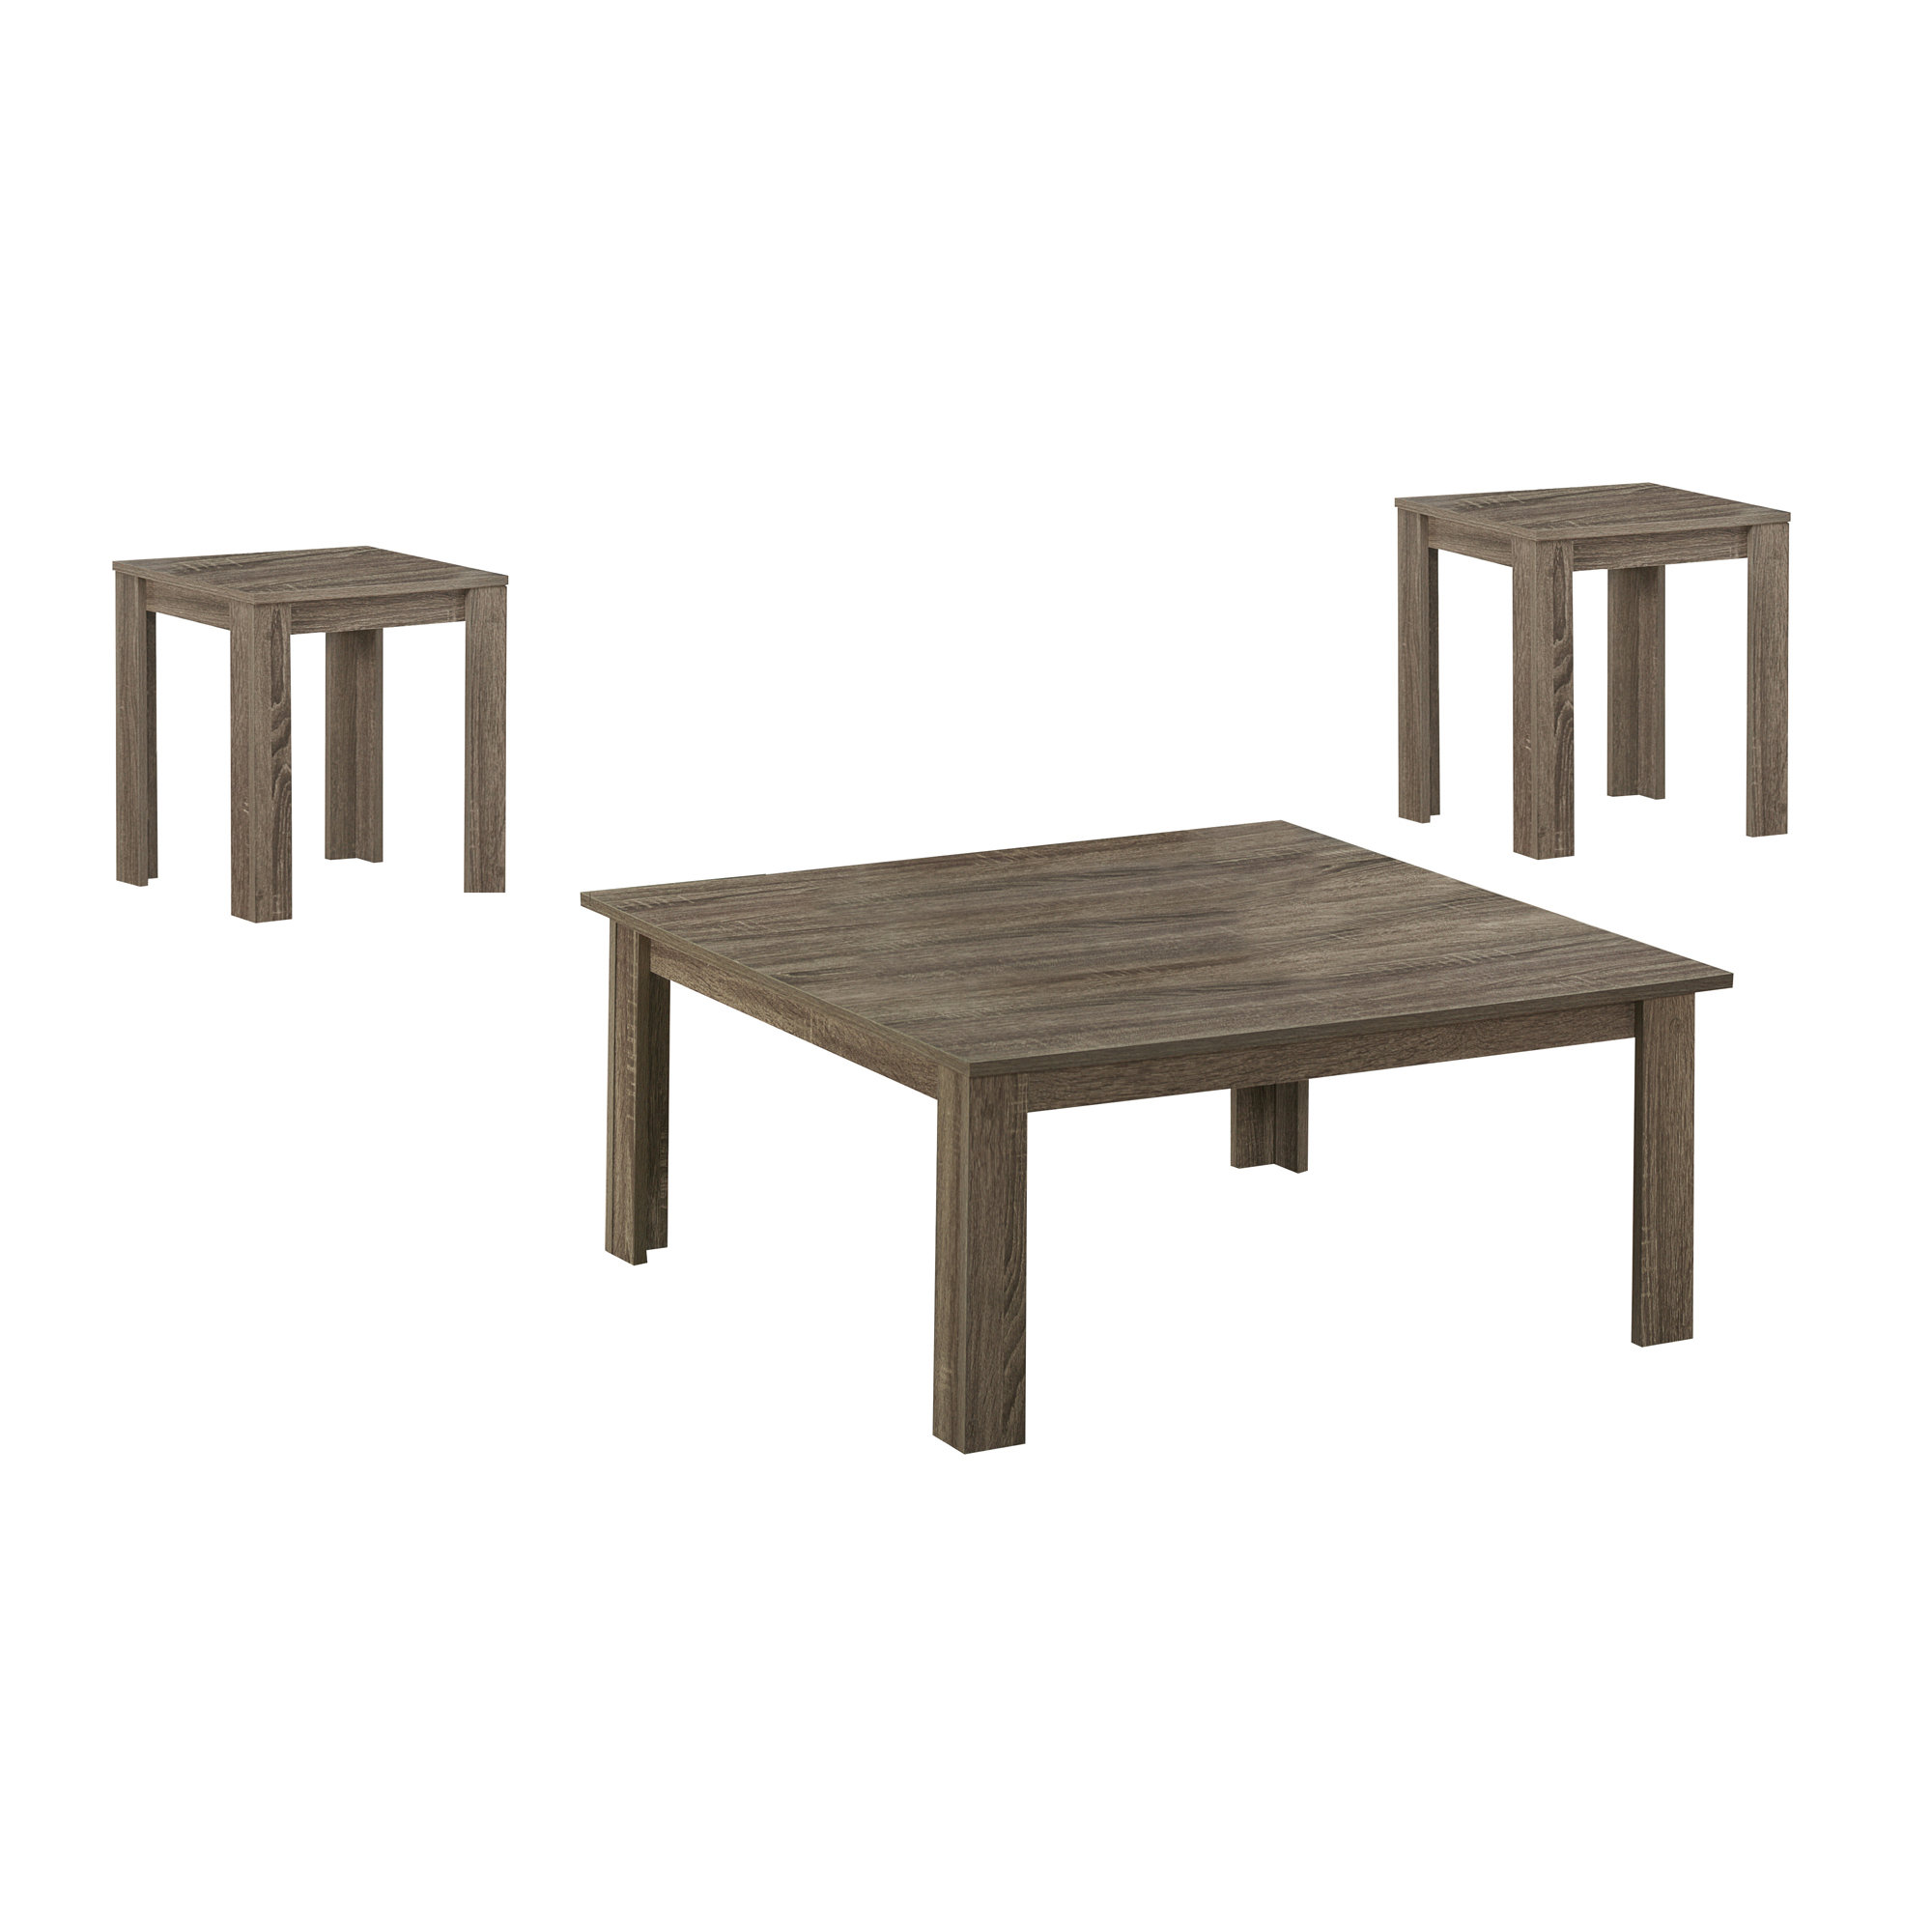 TABLE SET - 3PCS SET / DARK TAUPE